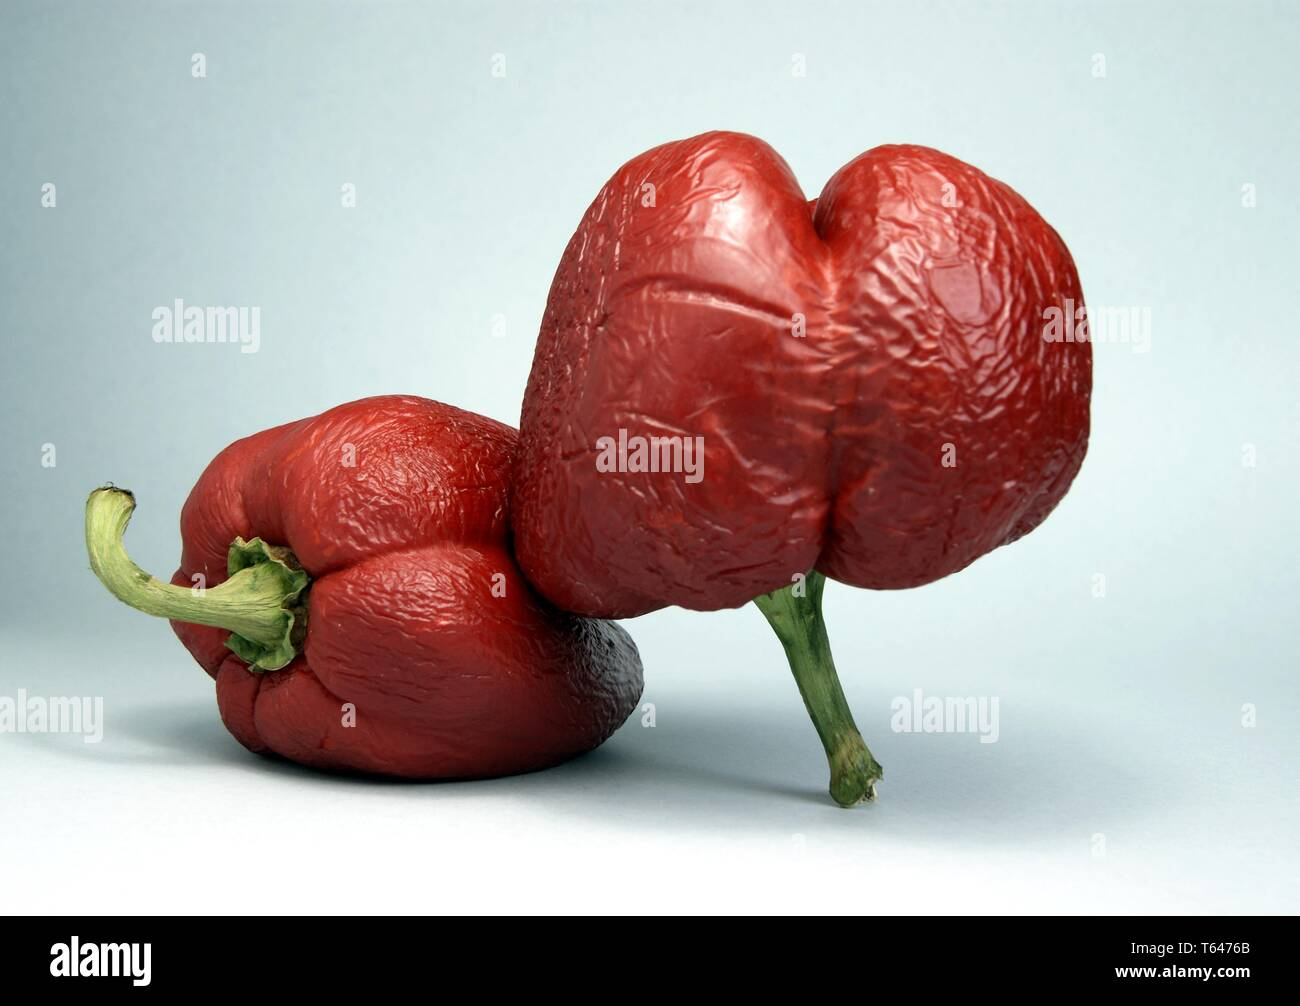 Spoiled red pepper - Stock Image